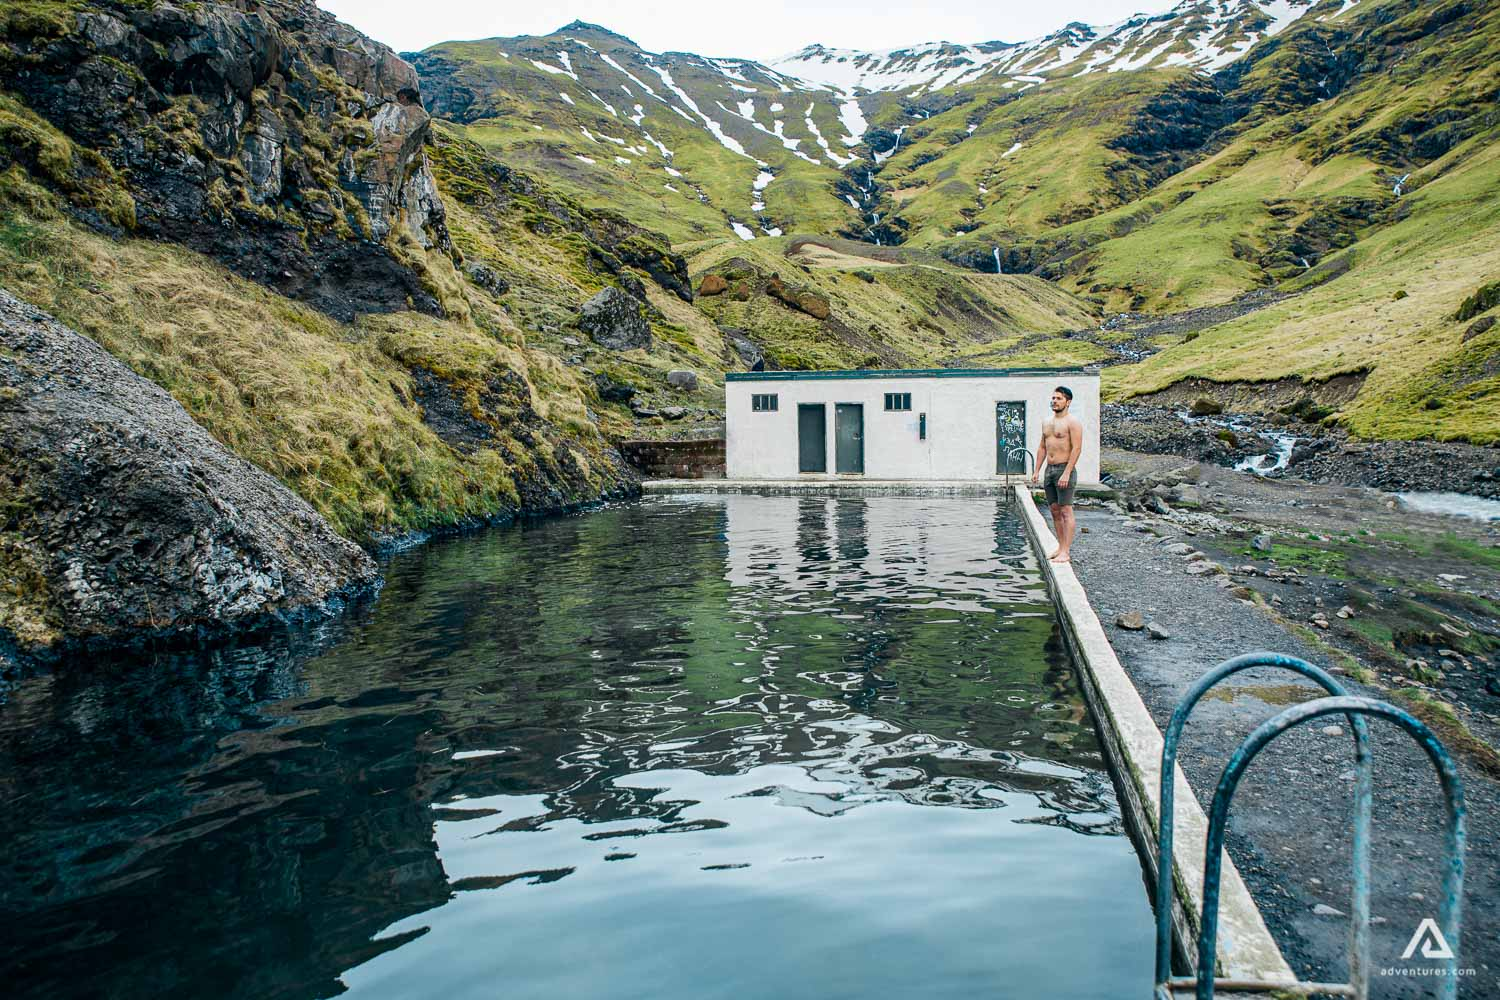 Seljavallalaug, Iceland's oldest man-made pool